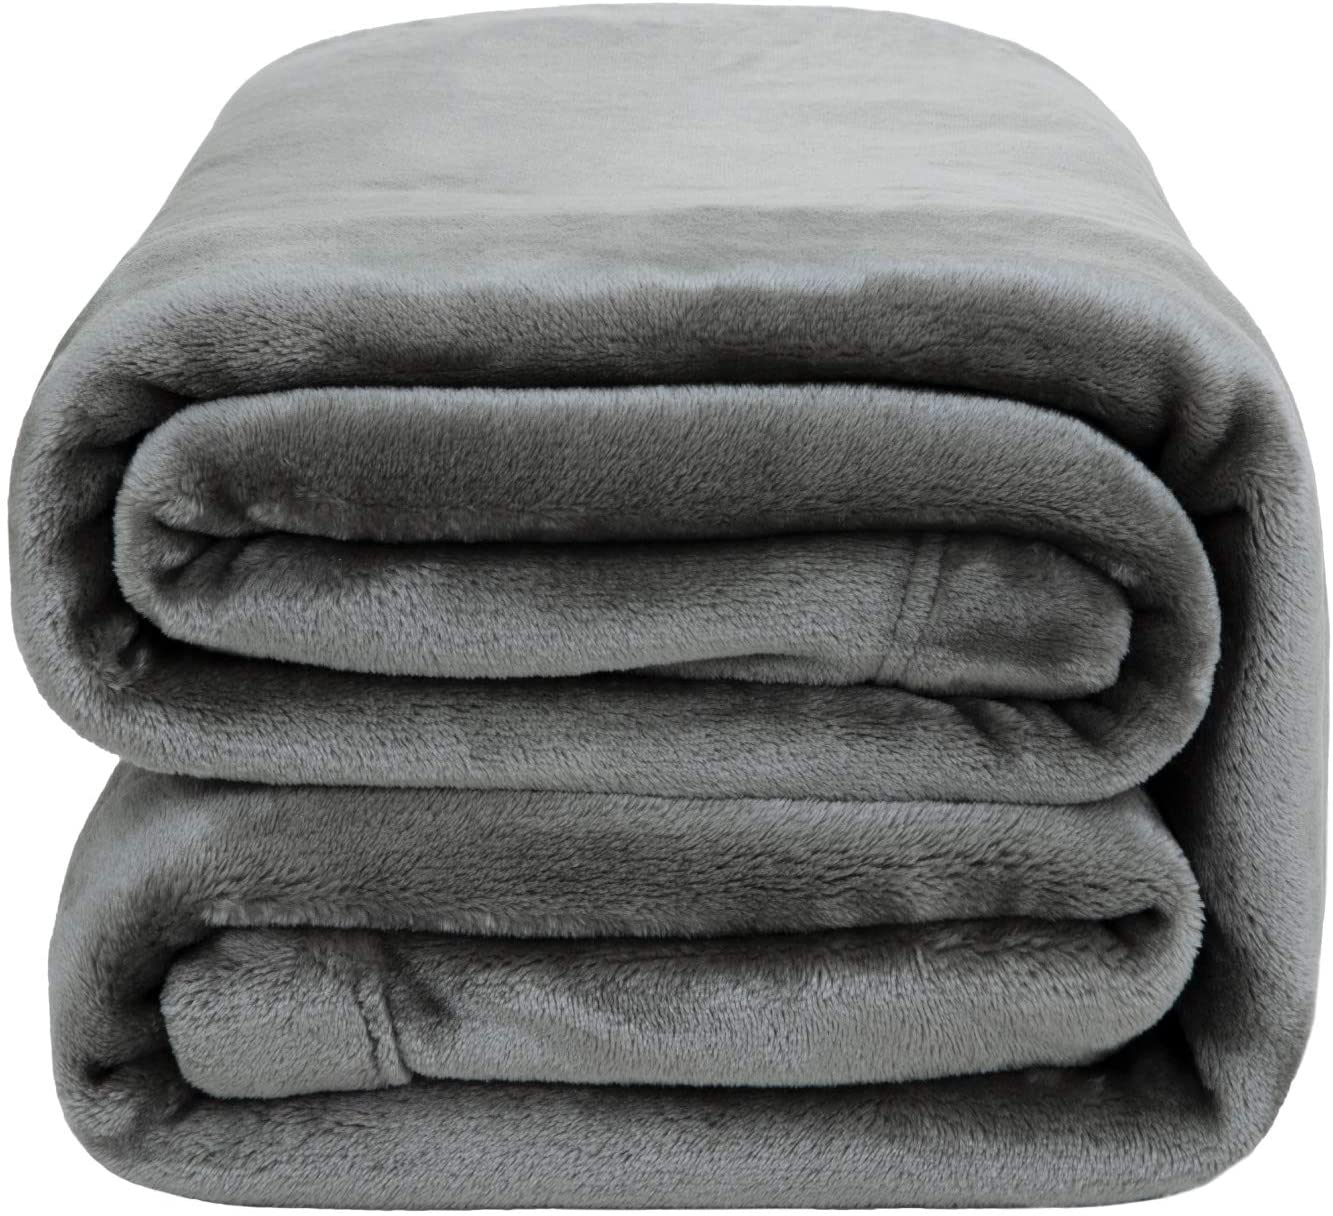 Bedsure Flannel Fleece Blanket 350GSM - Super Soft Warm Thick All Season Blanket for Couch Sofa Bed Traveling - Reversible Plush Bed Blankets, Twin Blanket 60x80 inches, Light Grey